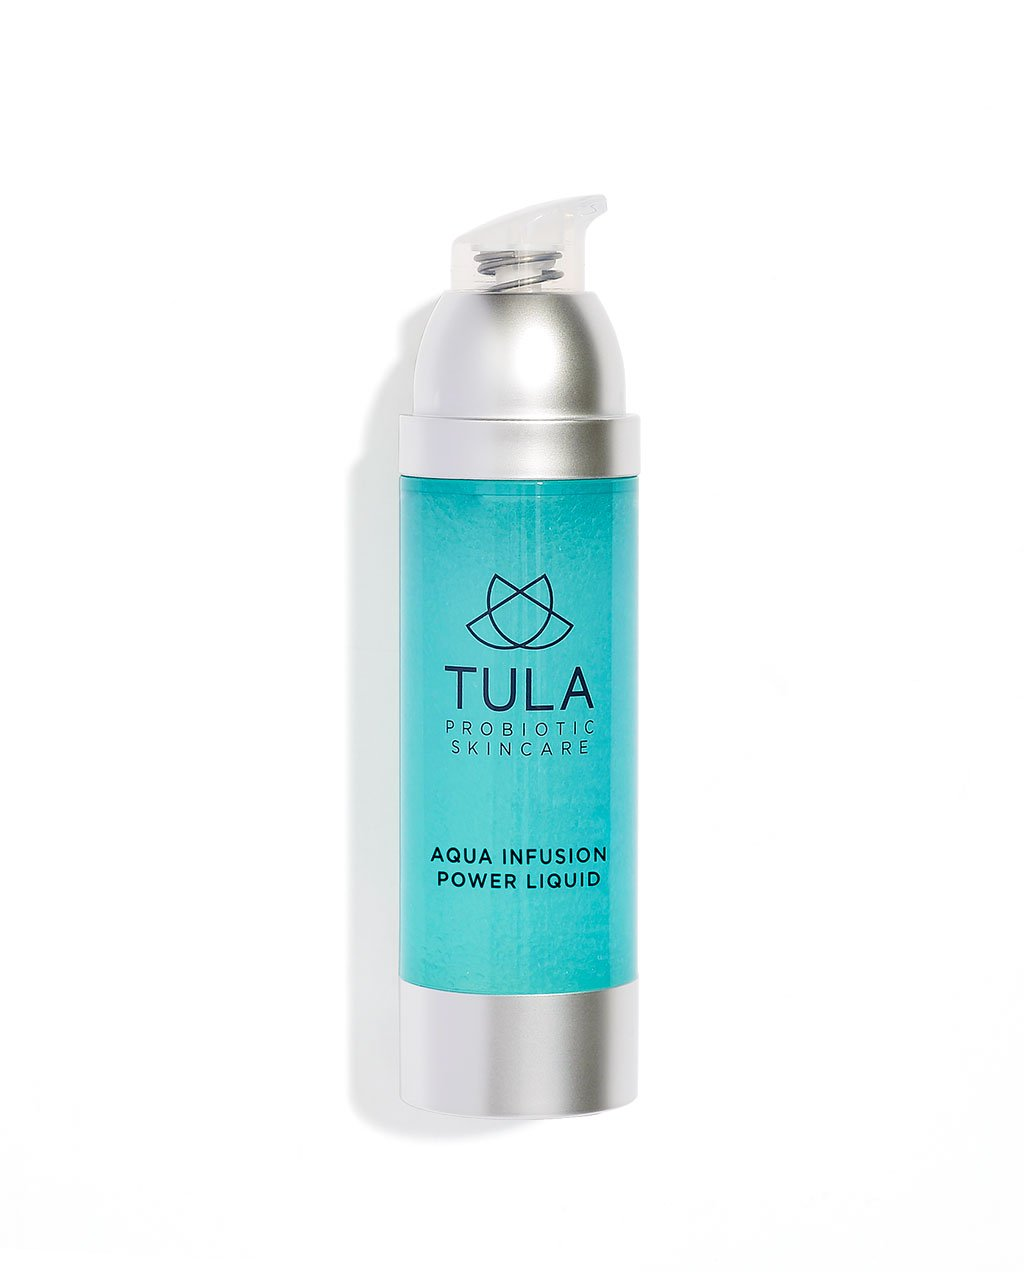 TULA Probiotic Skin Care Aqua Infusion Power Liquid | Face Serum with Hyaluronic Acid, Deeply Hydrate and Smooth Apperance of Stressed Skin | 1 oz